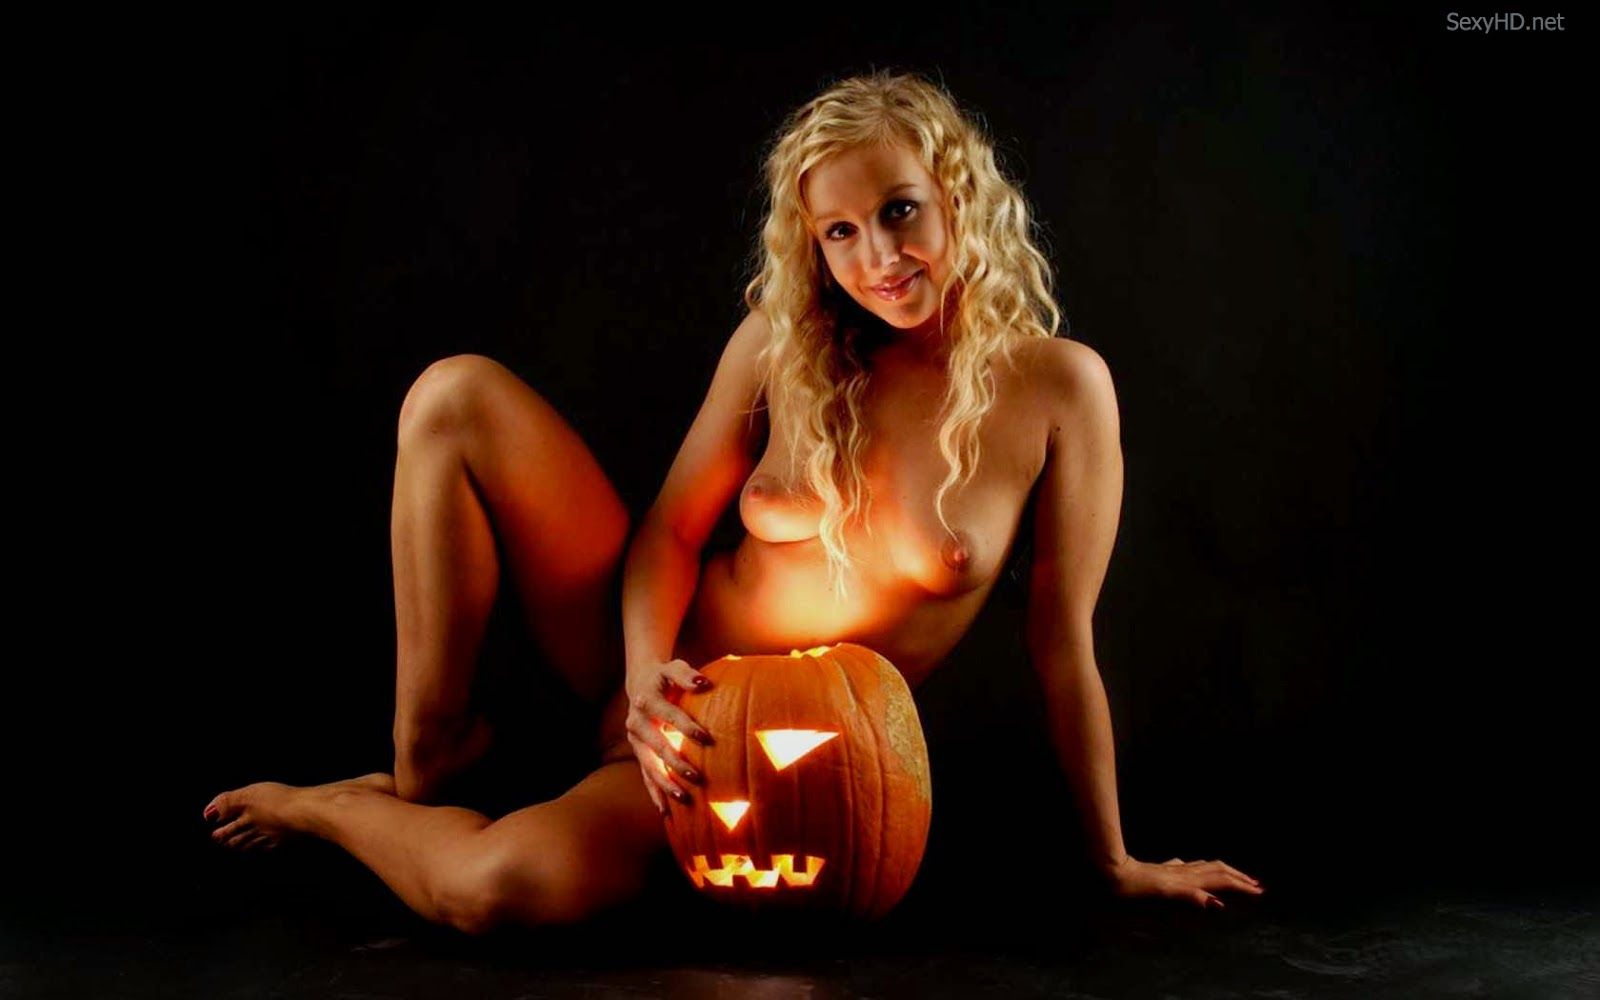 Free naked girl halloween wallpaper porn movie